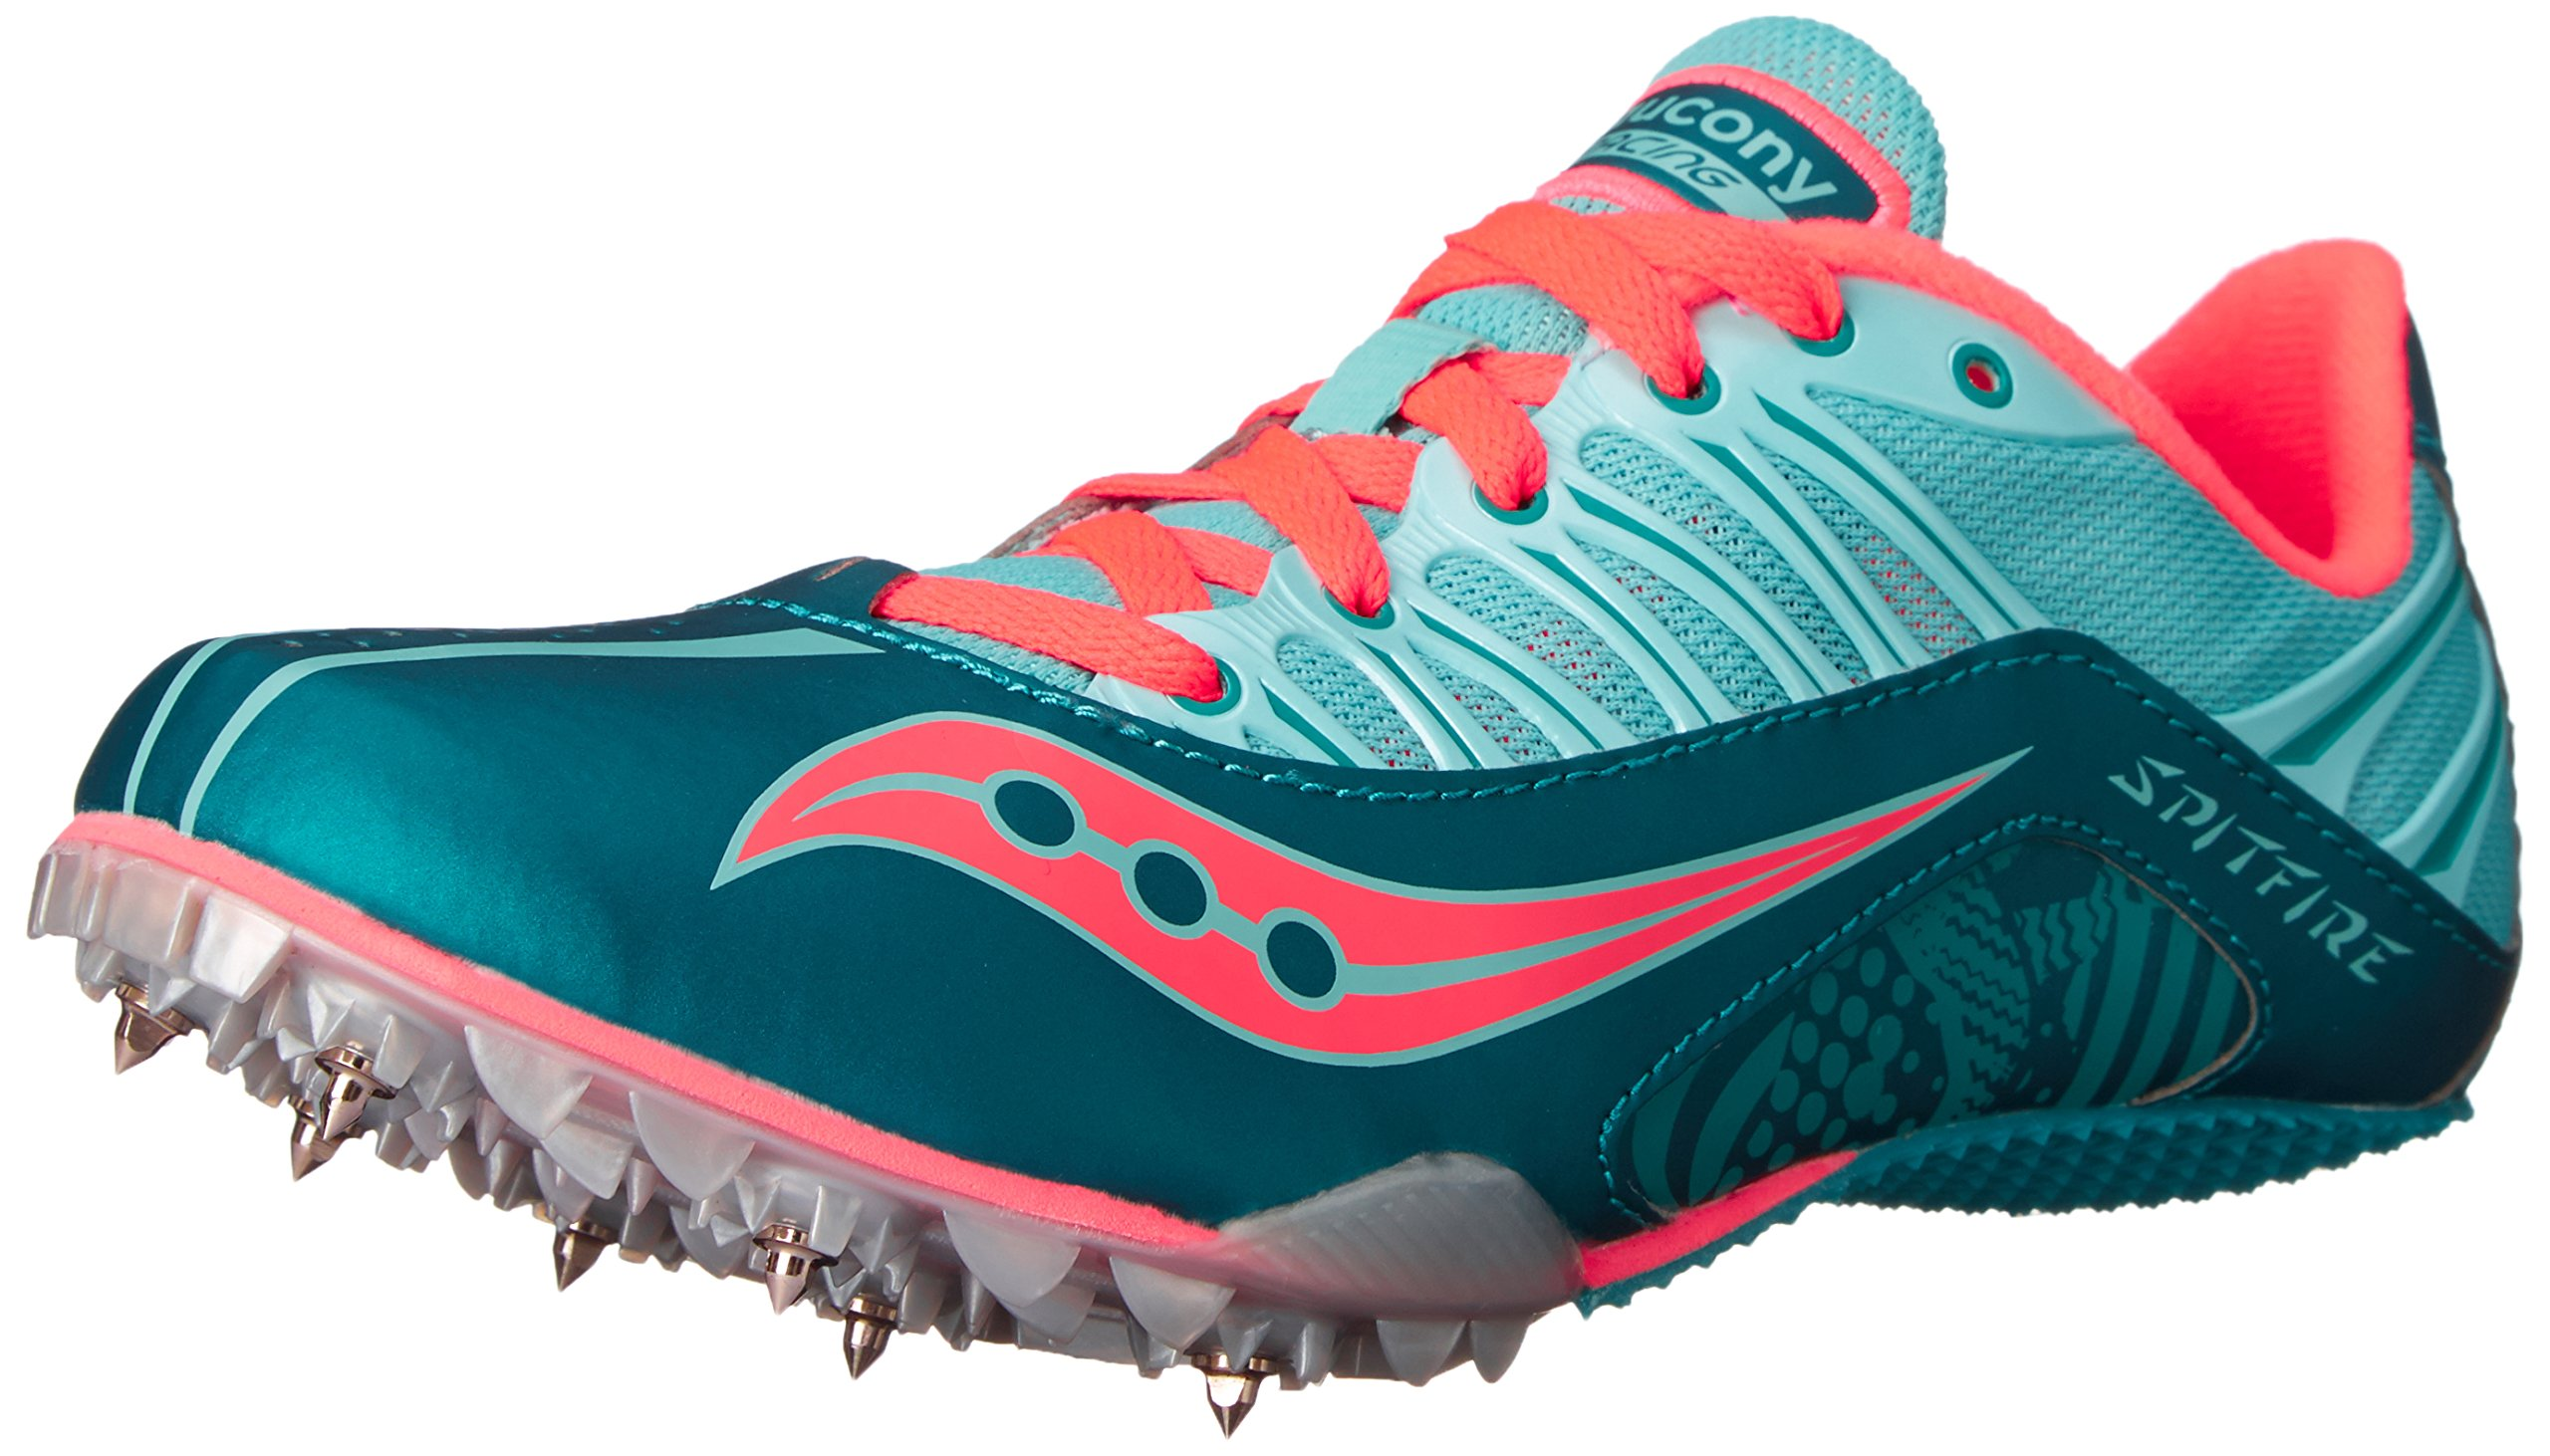 Saucony Women's Spitfire Spike Shoe, Teal/Coral, 7 M US by Saucony (Image #1)